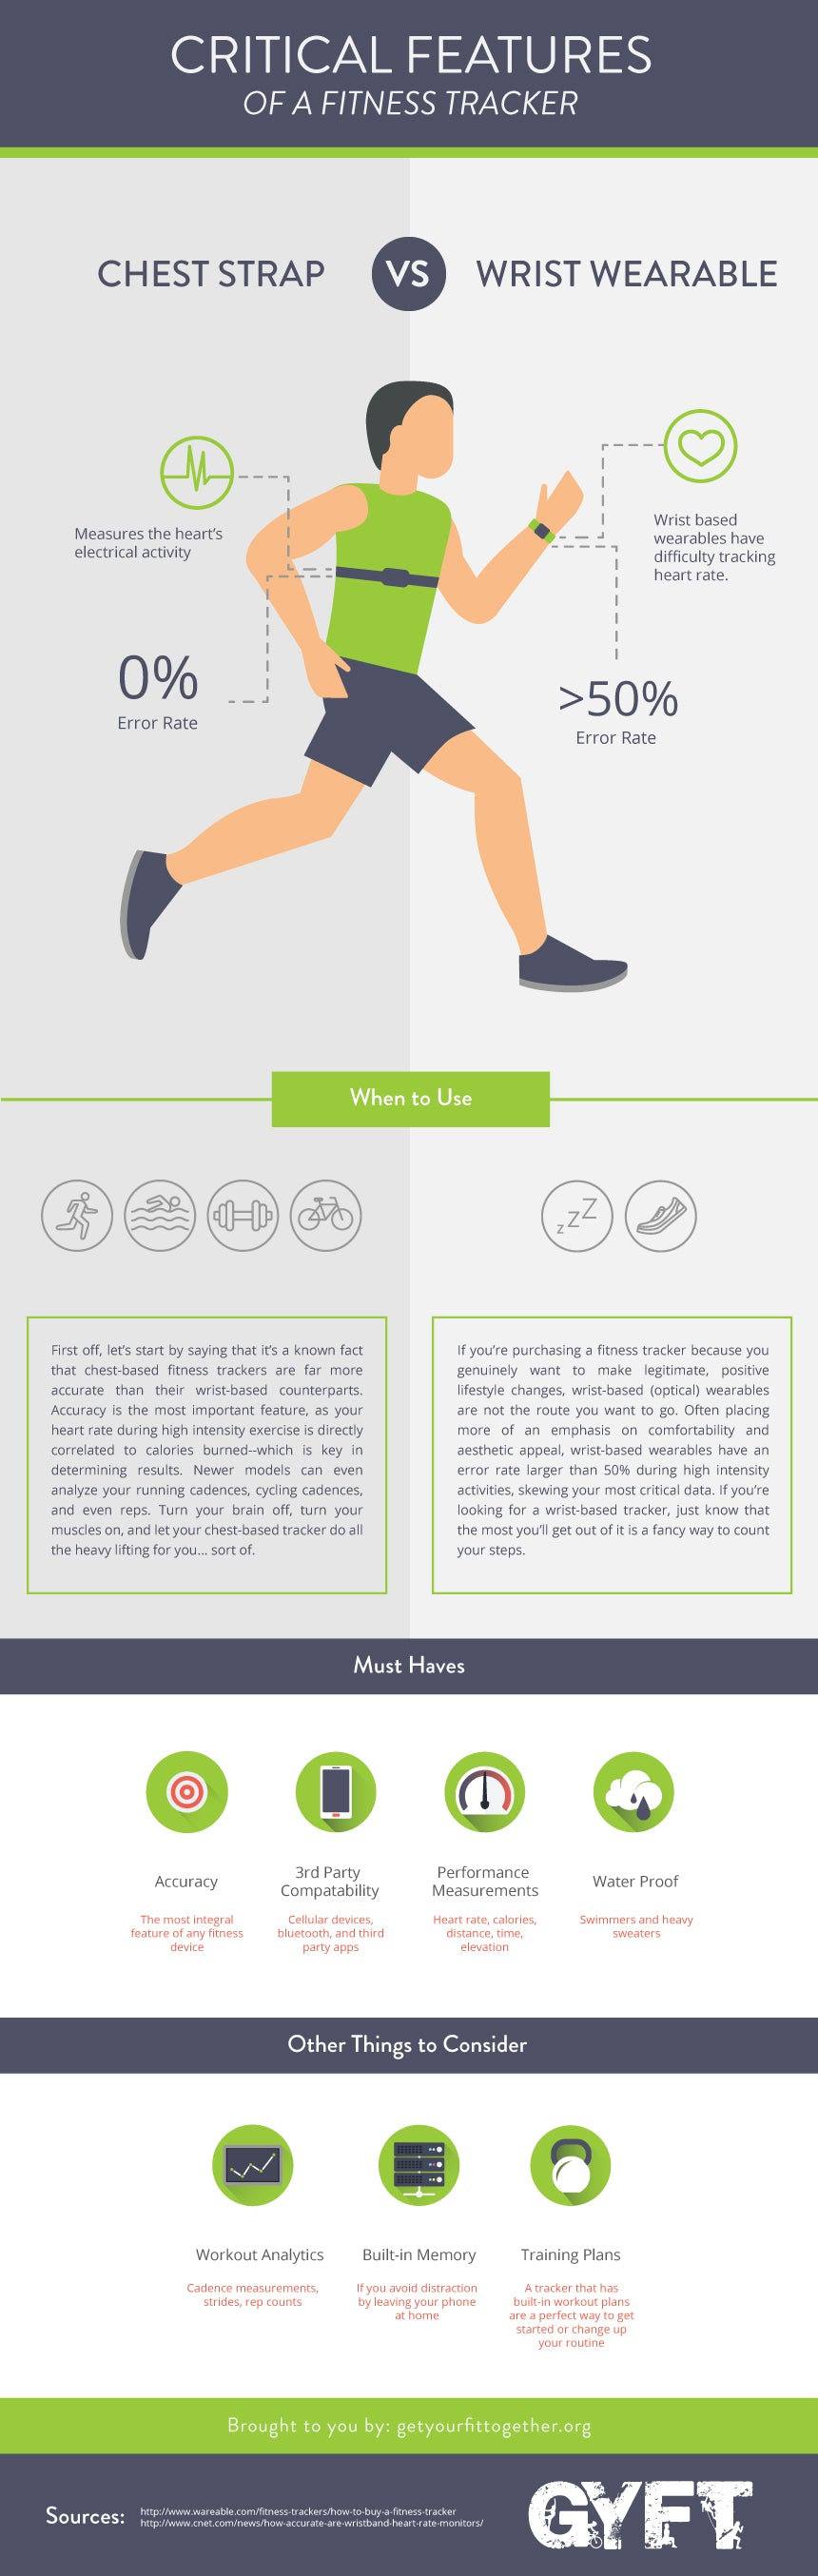 fitness tracker features infographic